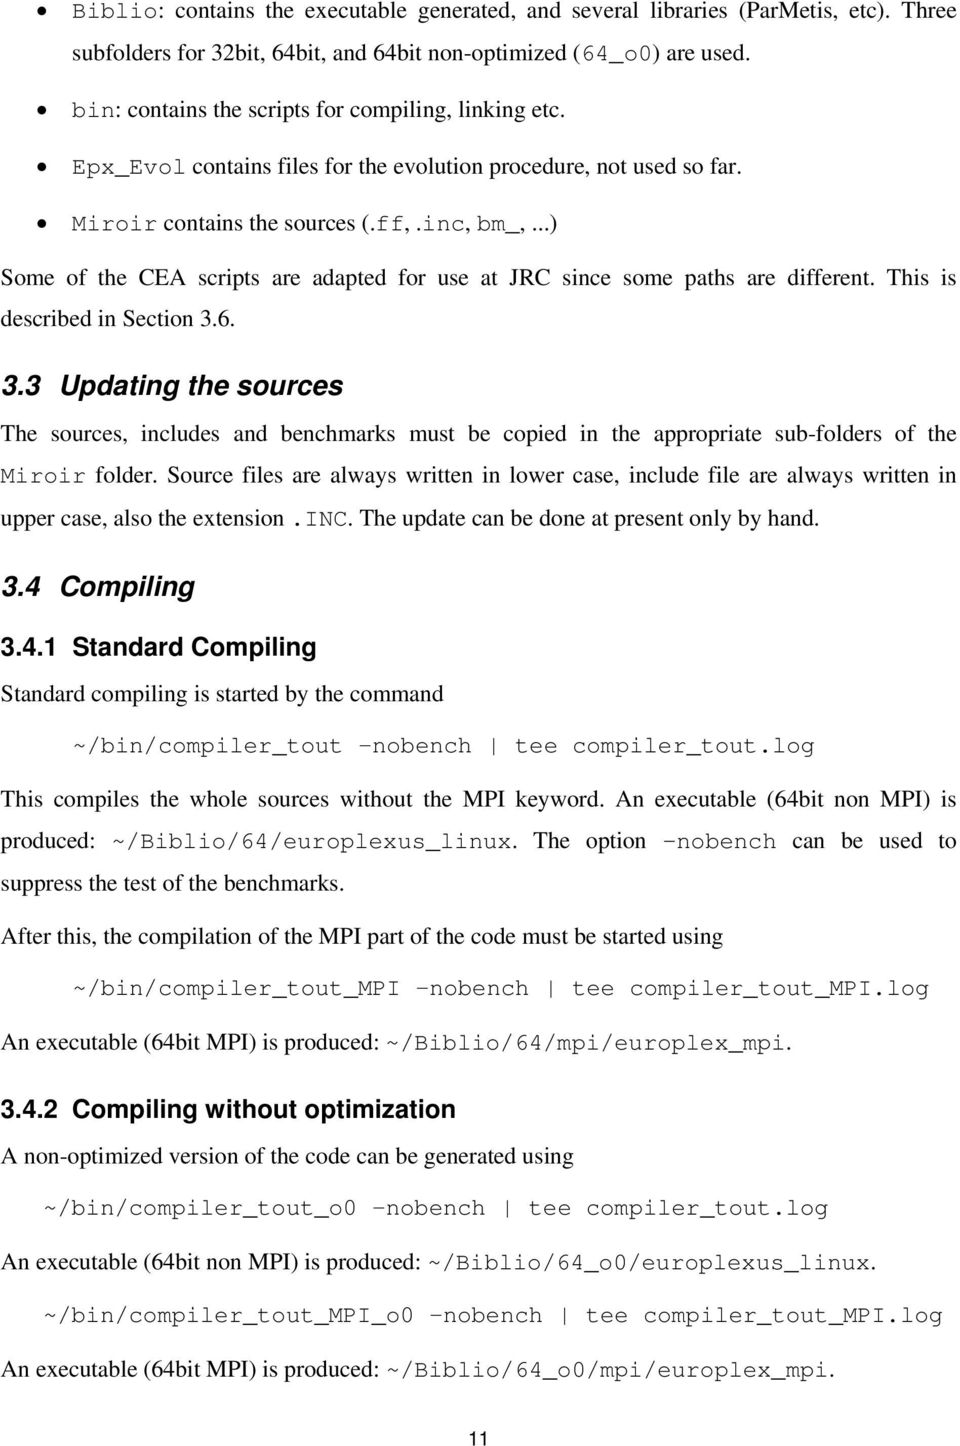 ..) Some of the CEA scripts are adapted for use at JRC since some paths are different. This is described in Section 3.